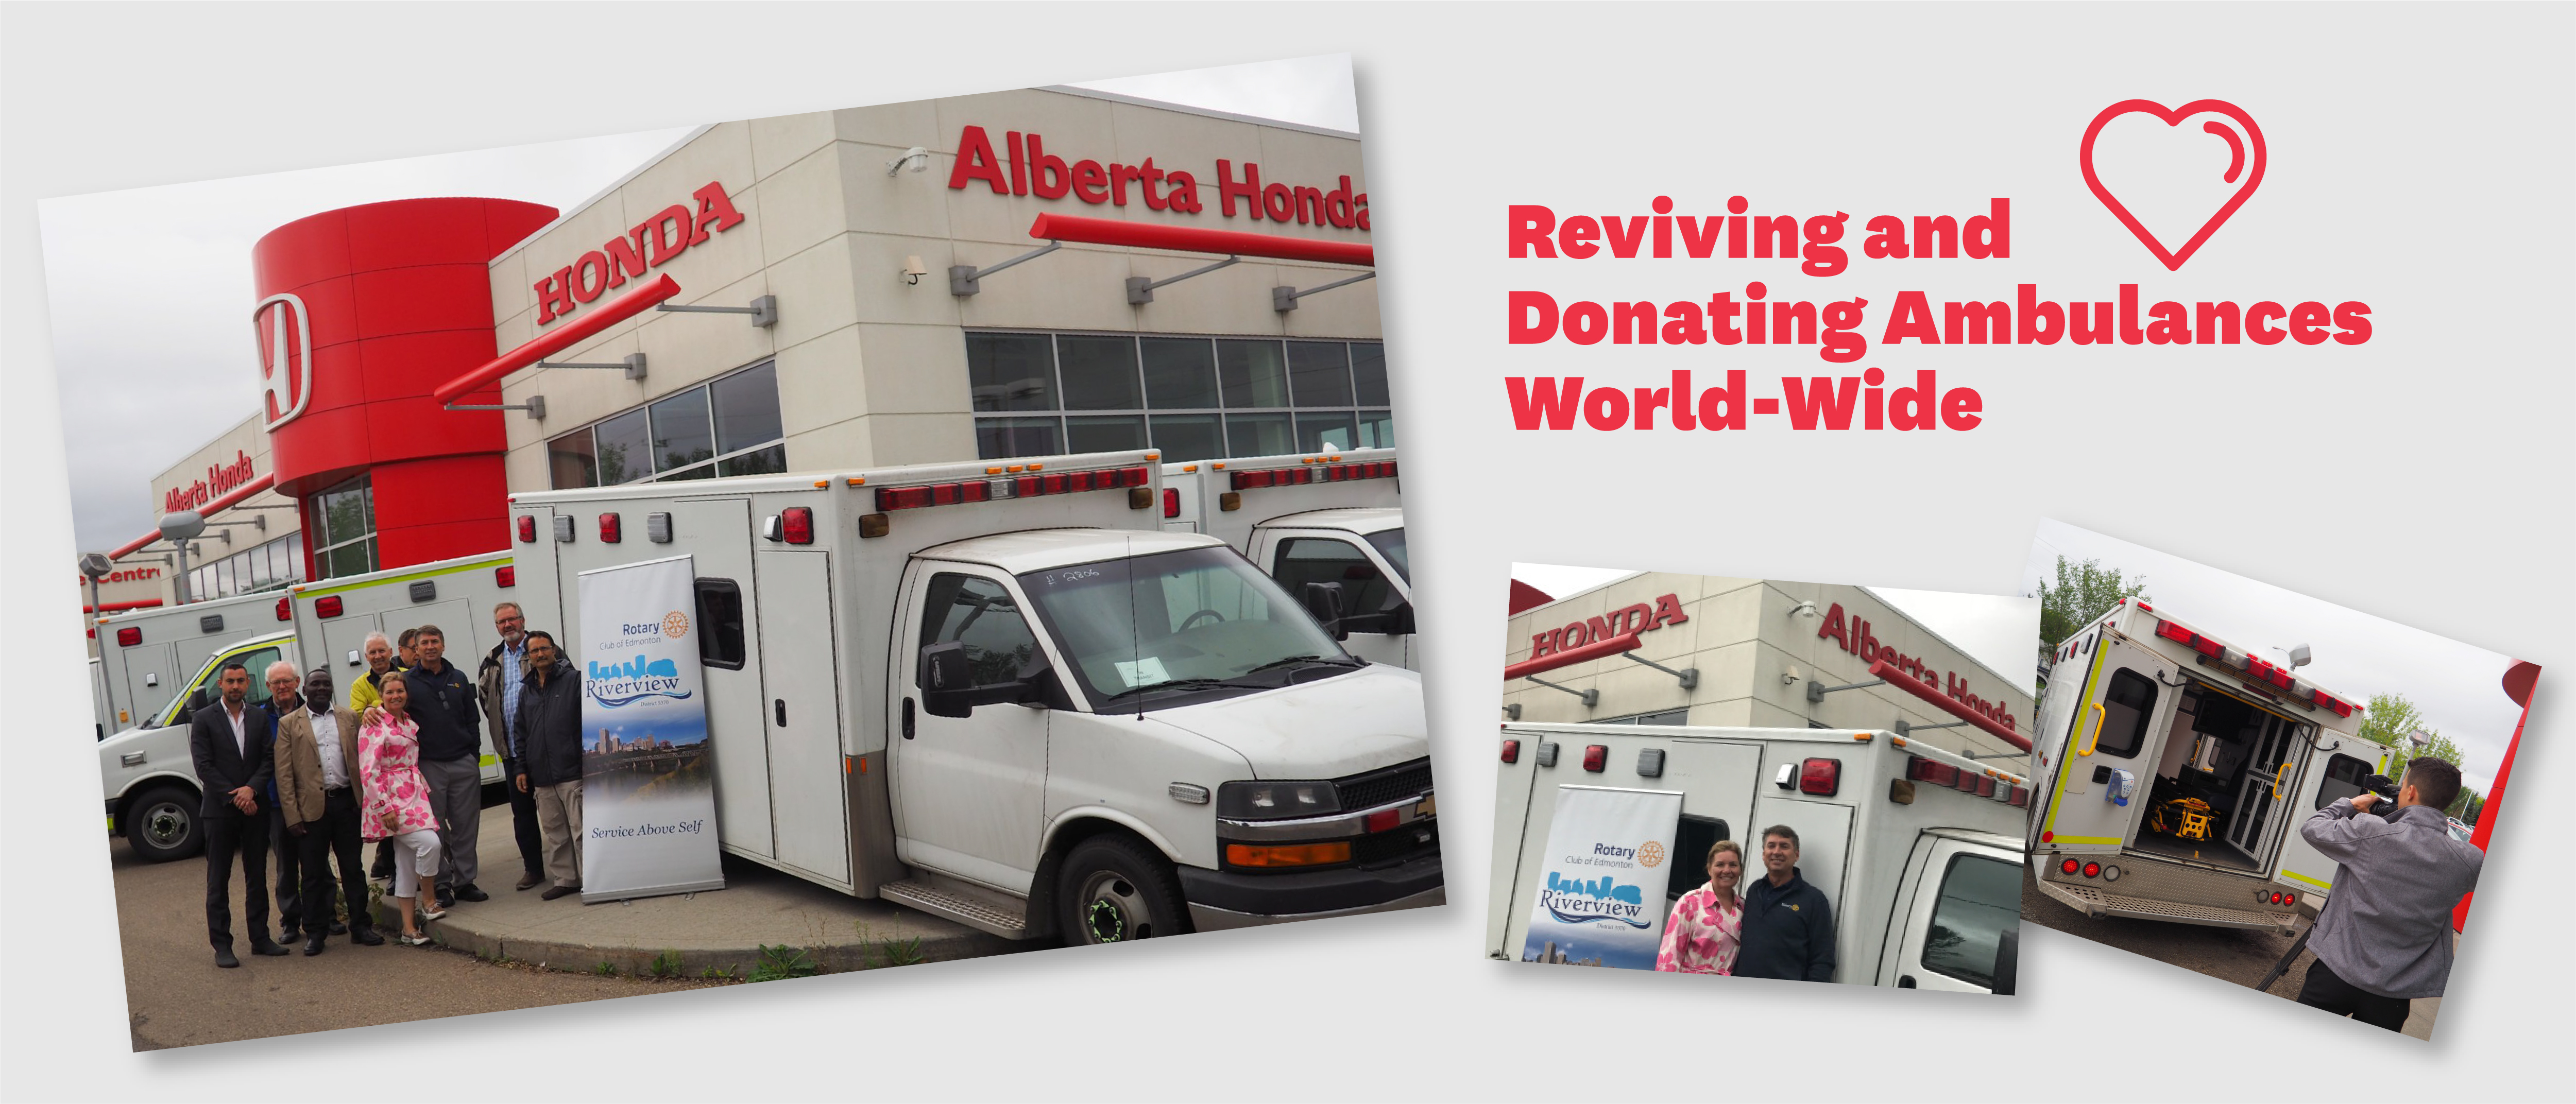 Reviving and Donating Ambulances World-Wide